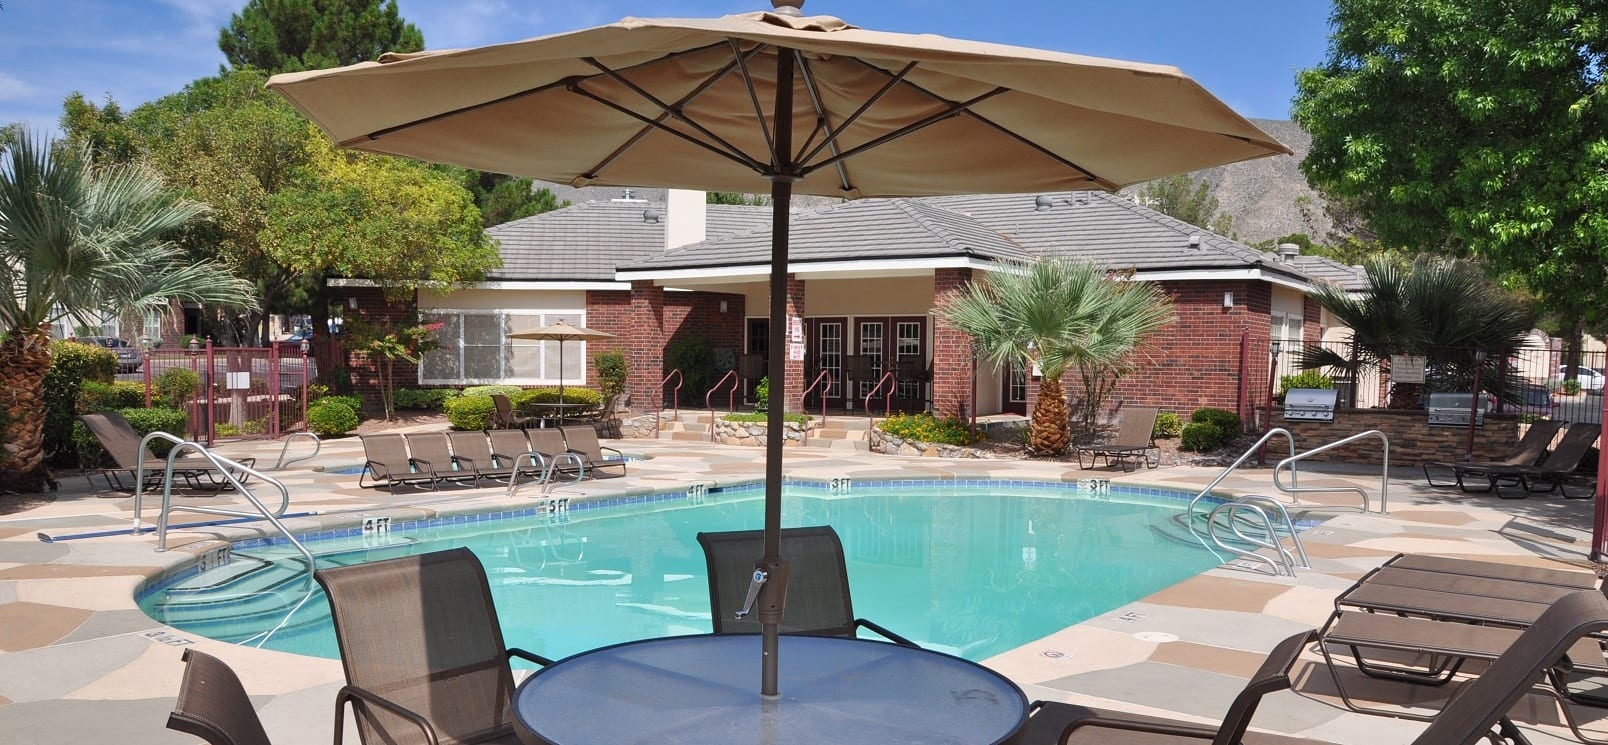 Luxury apartments in El Paso with great amenities